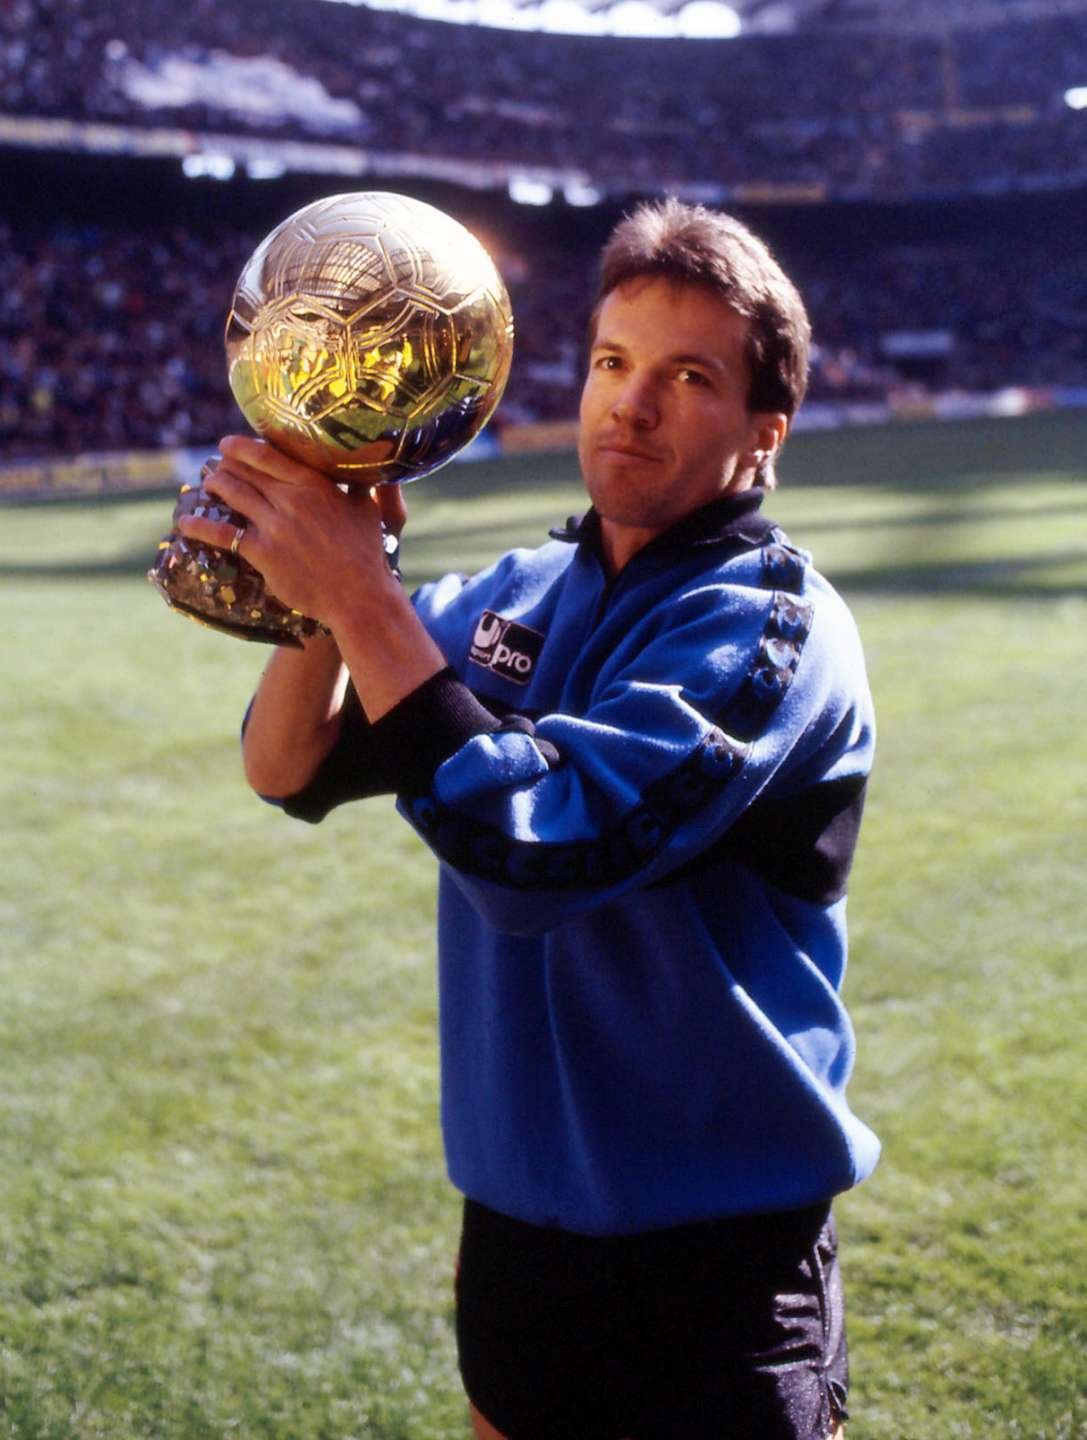 Photograph of Lothar Matthaus winning the golden ball trophy for 1990, Unknown author, public domain image free from copyright